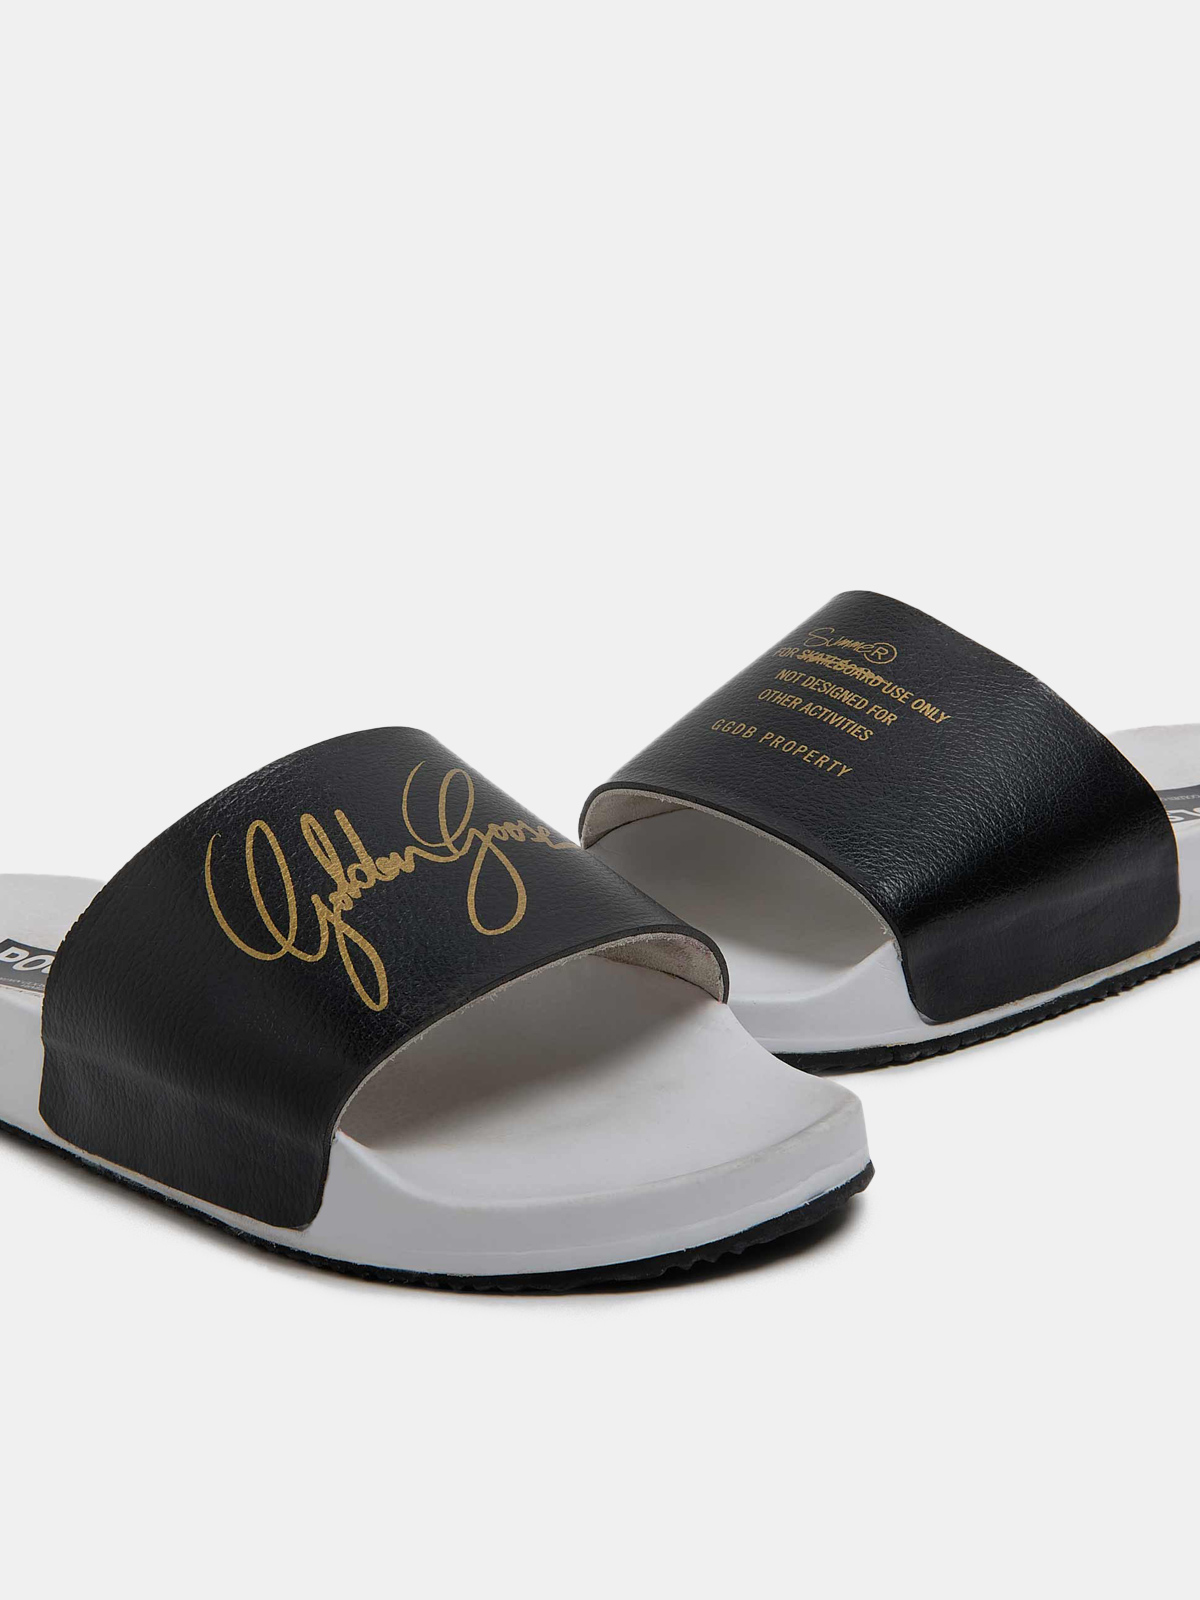 Golden Goose - Men's Poolstars with black strap and gold logo in